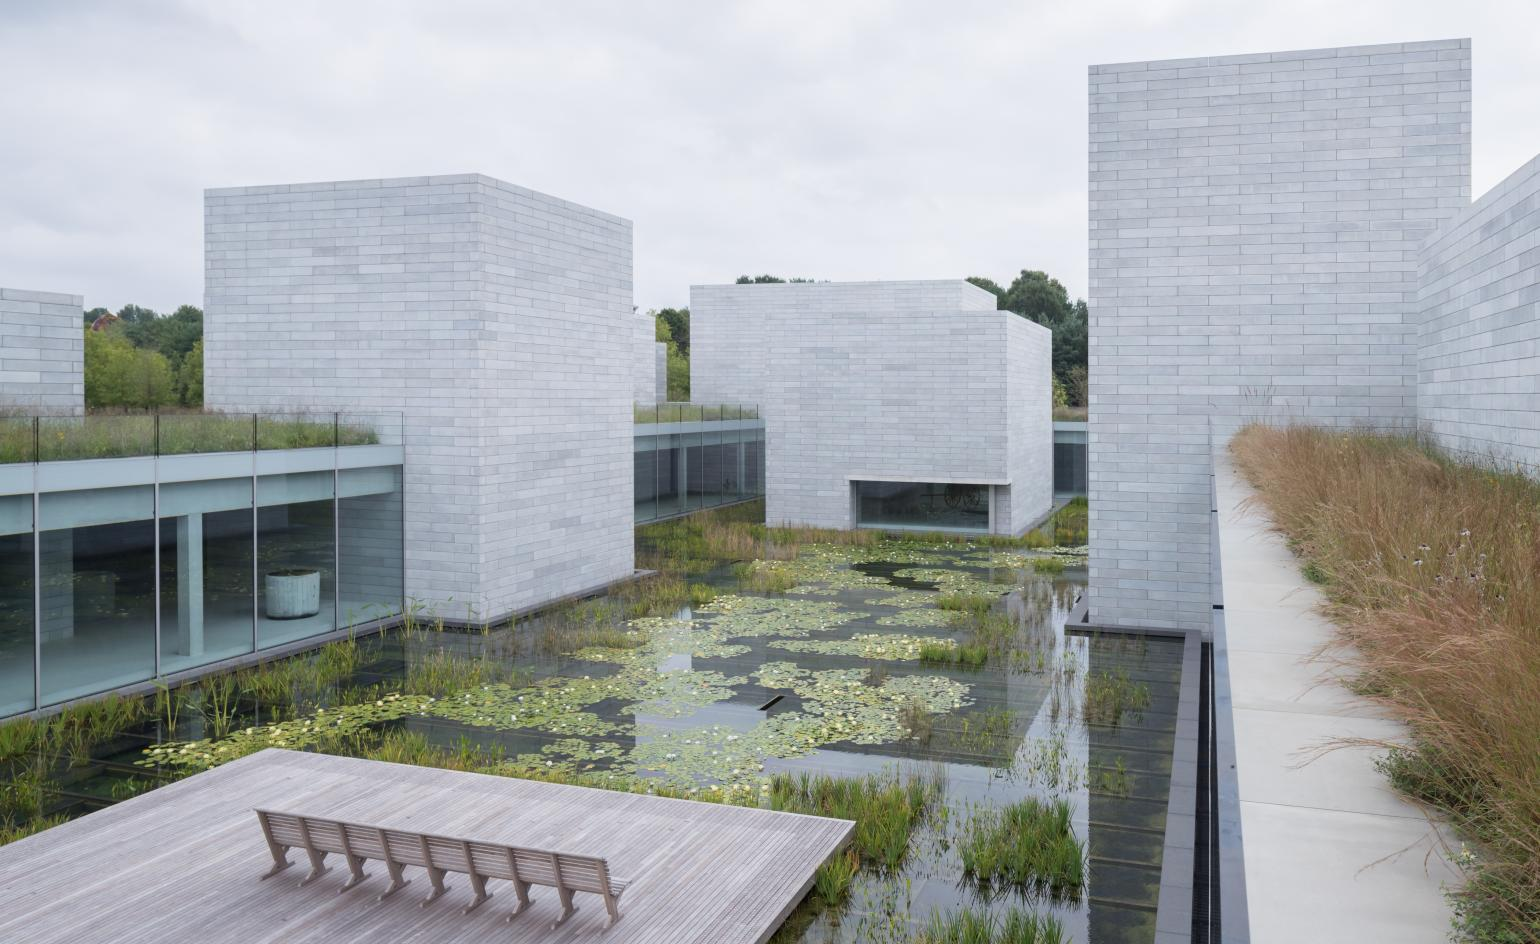 We tour Thomas Phifer's completed Glenstone Museum in Potomac